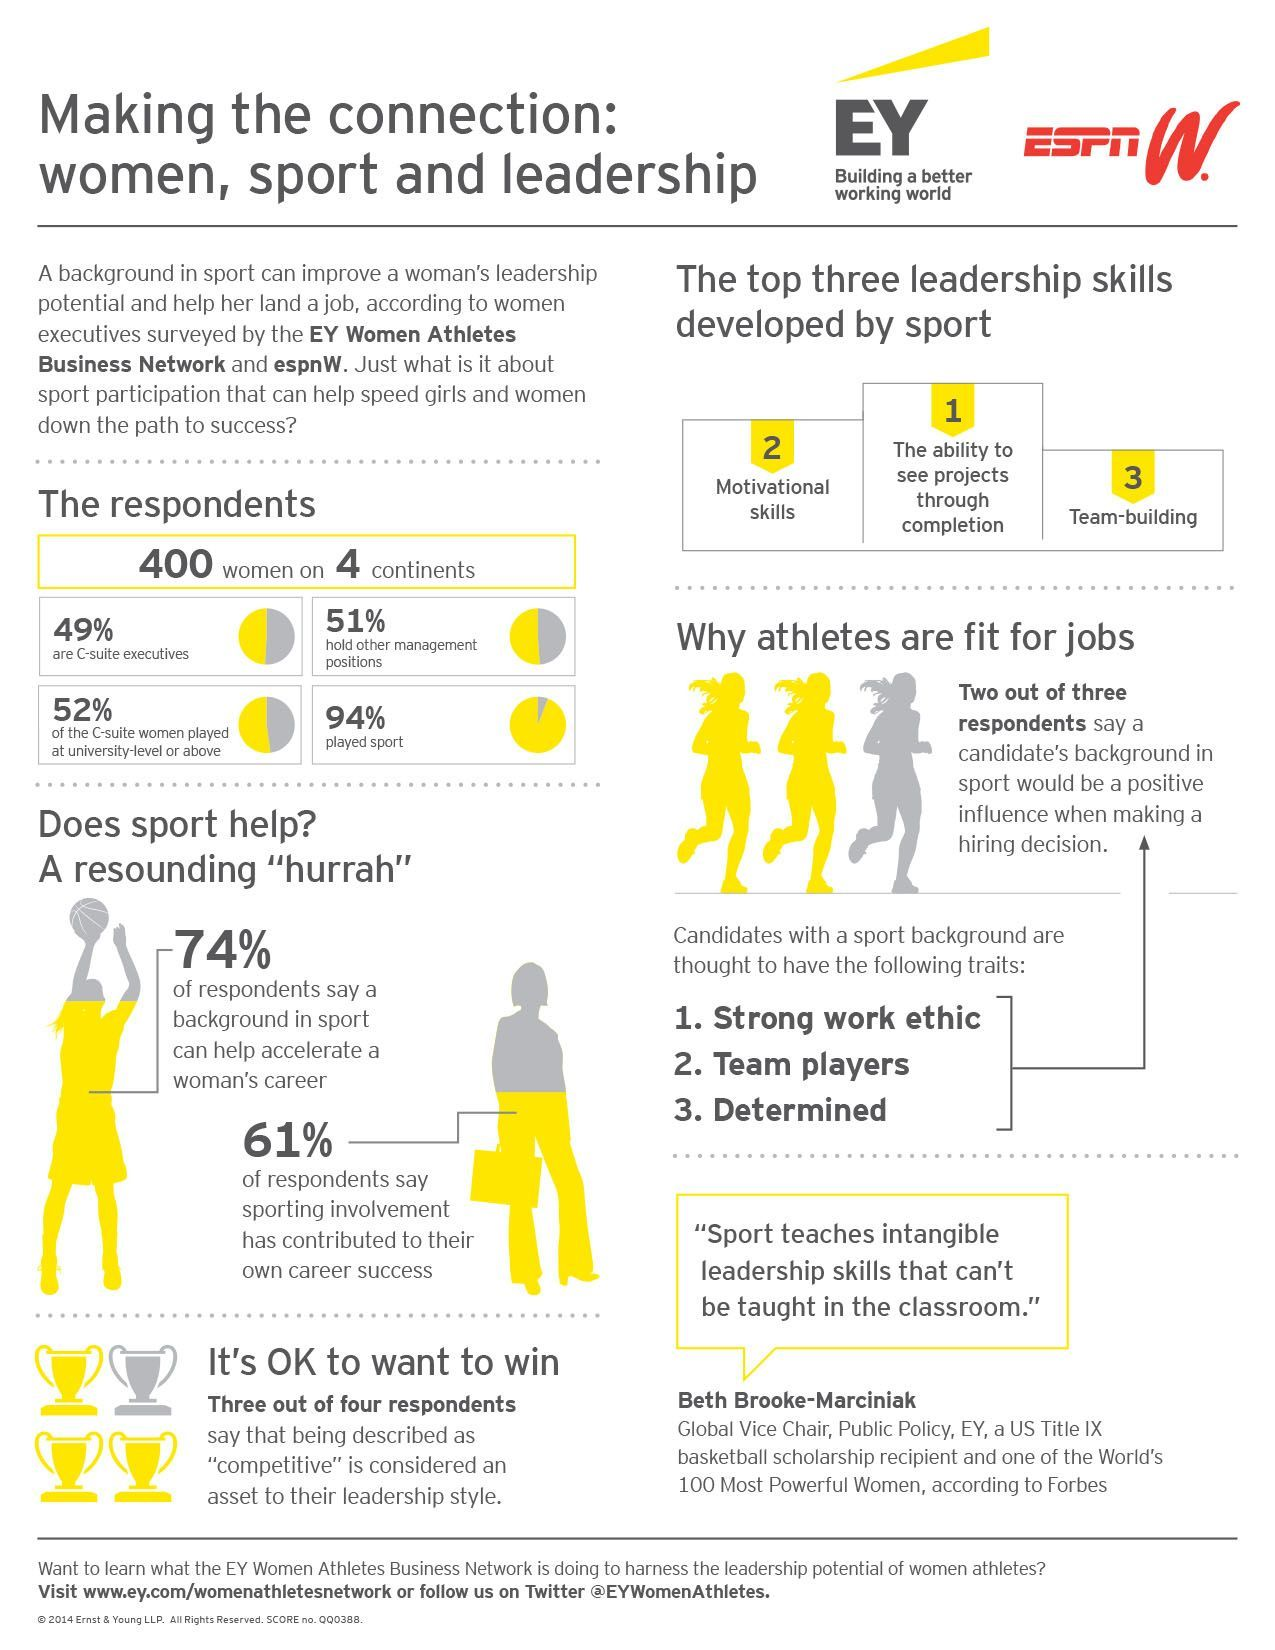 Should You Put Sports Experience on Your Resume? Women